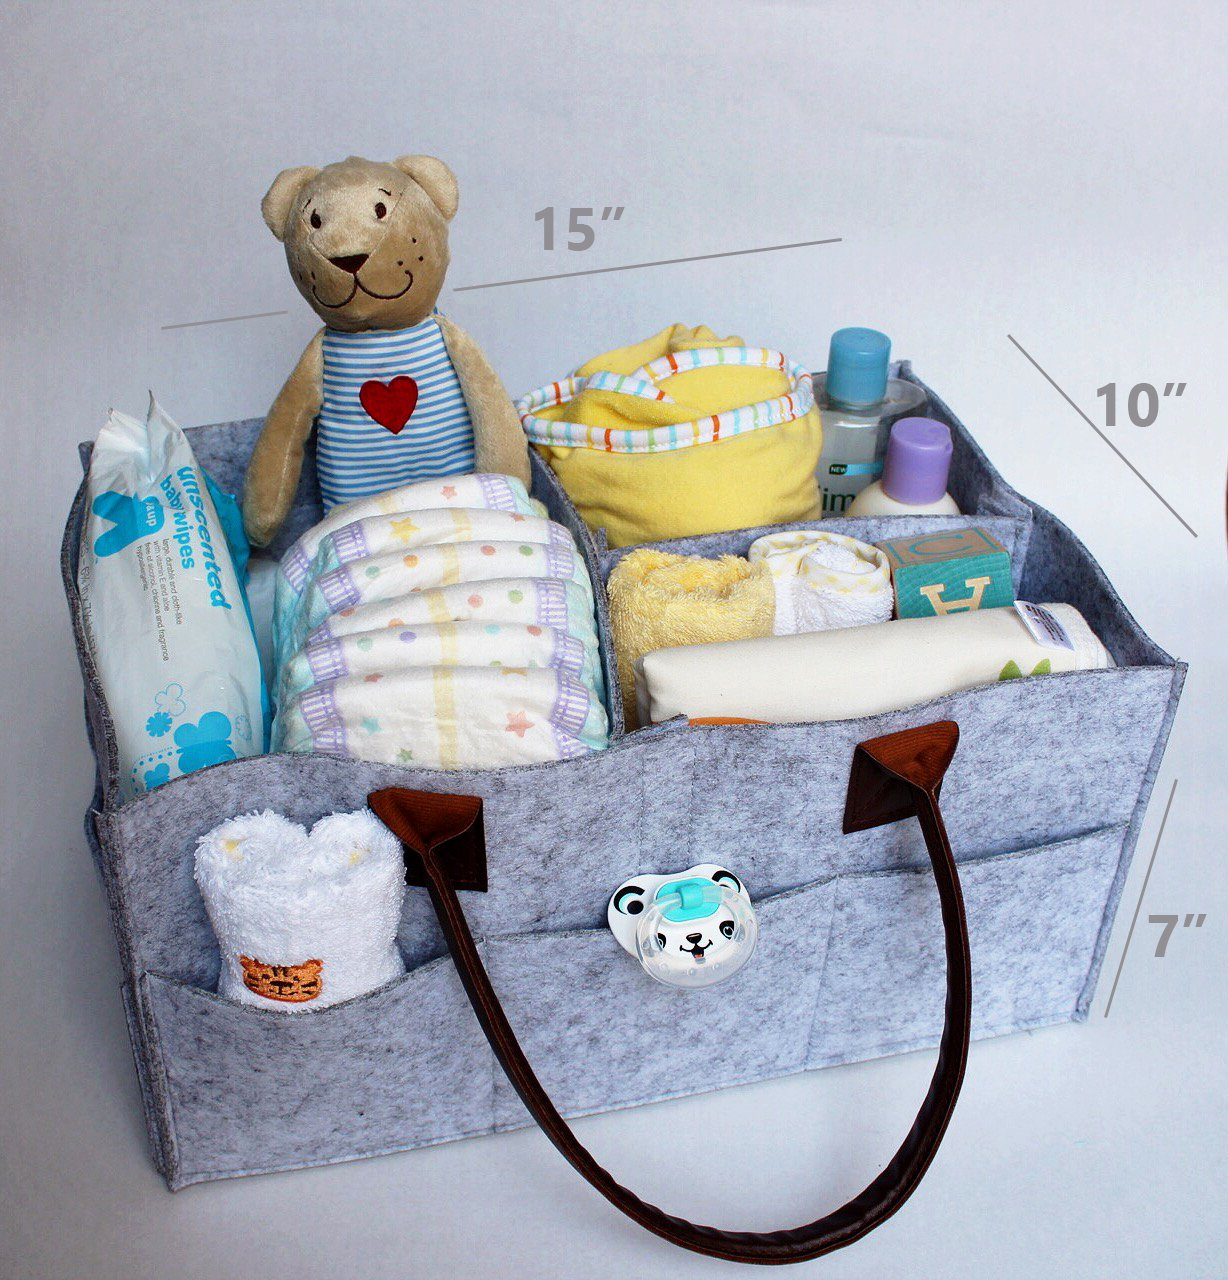 Amazon.com : Large Baby Diaper Caddy + Changing Mat Set Sale | Baby Shower Gift Set Present | Changing Pad Liner & Nursery Tote Bag Boy Girl | Large ...